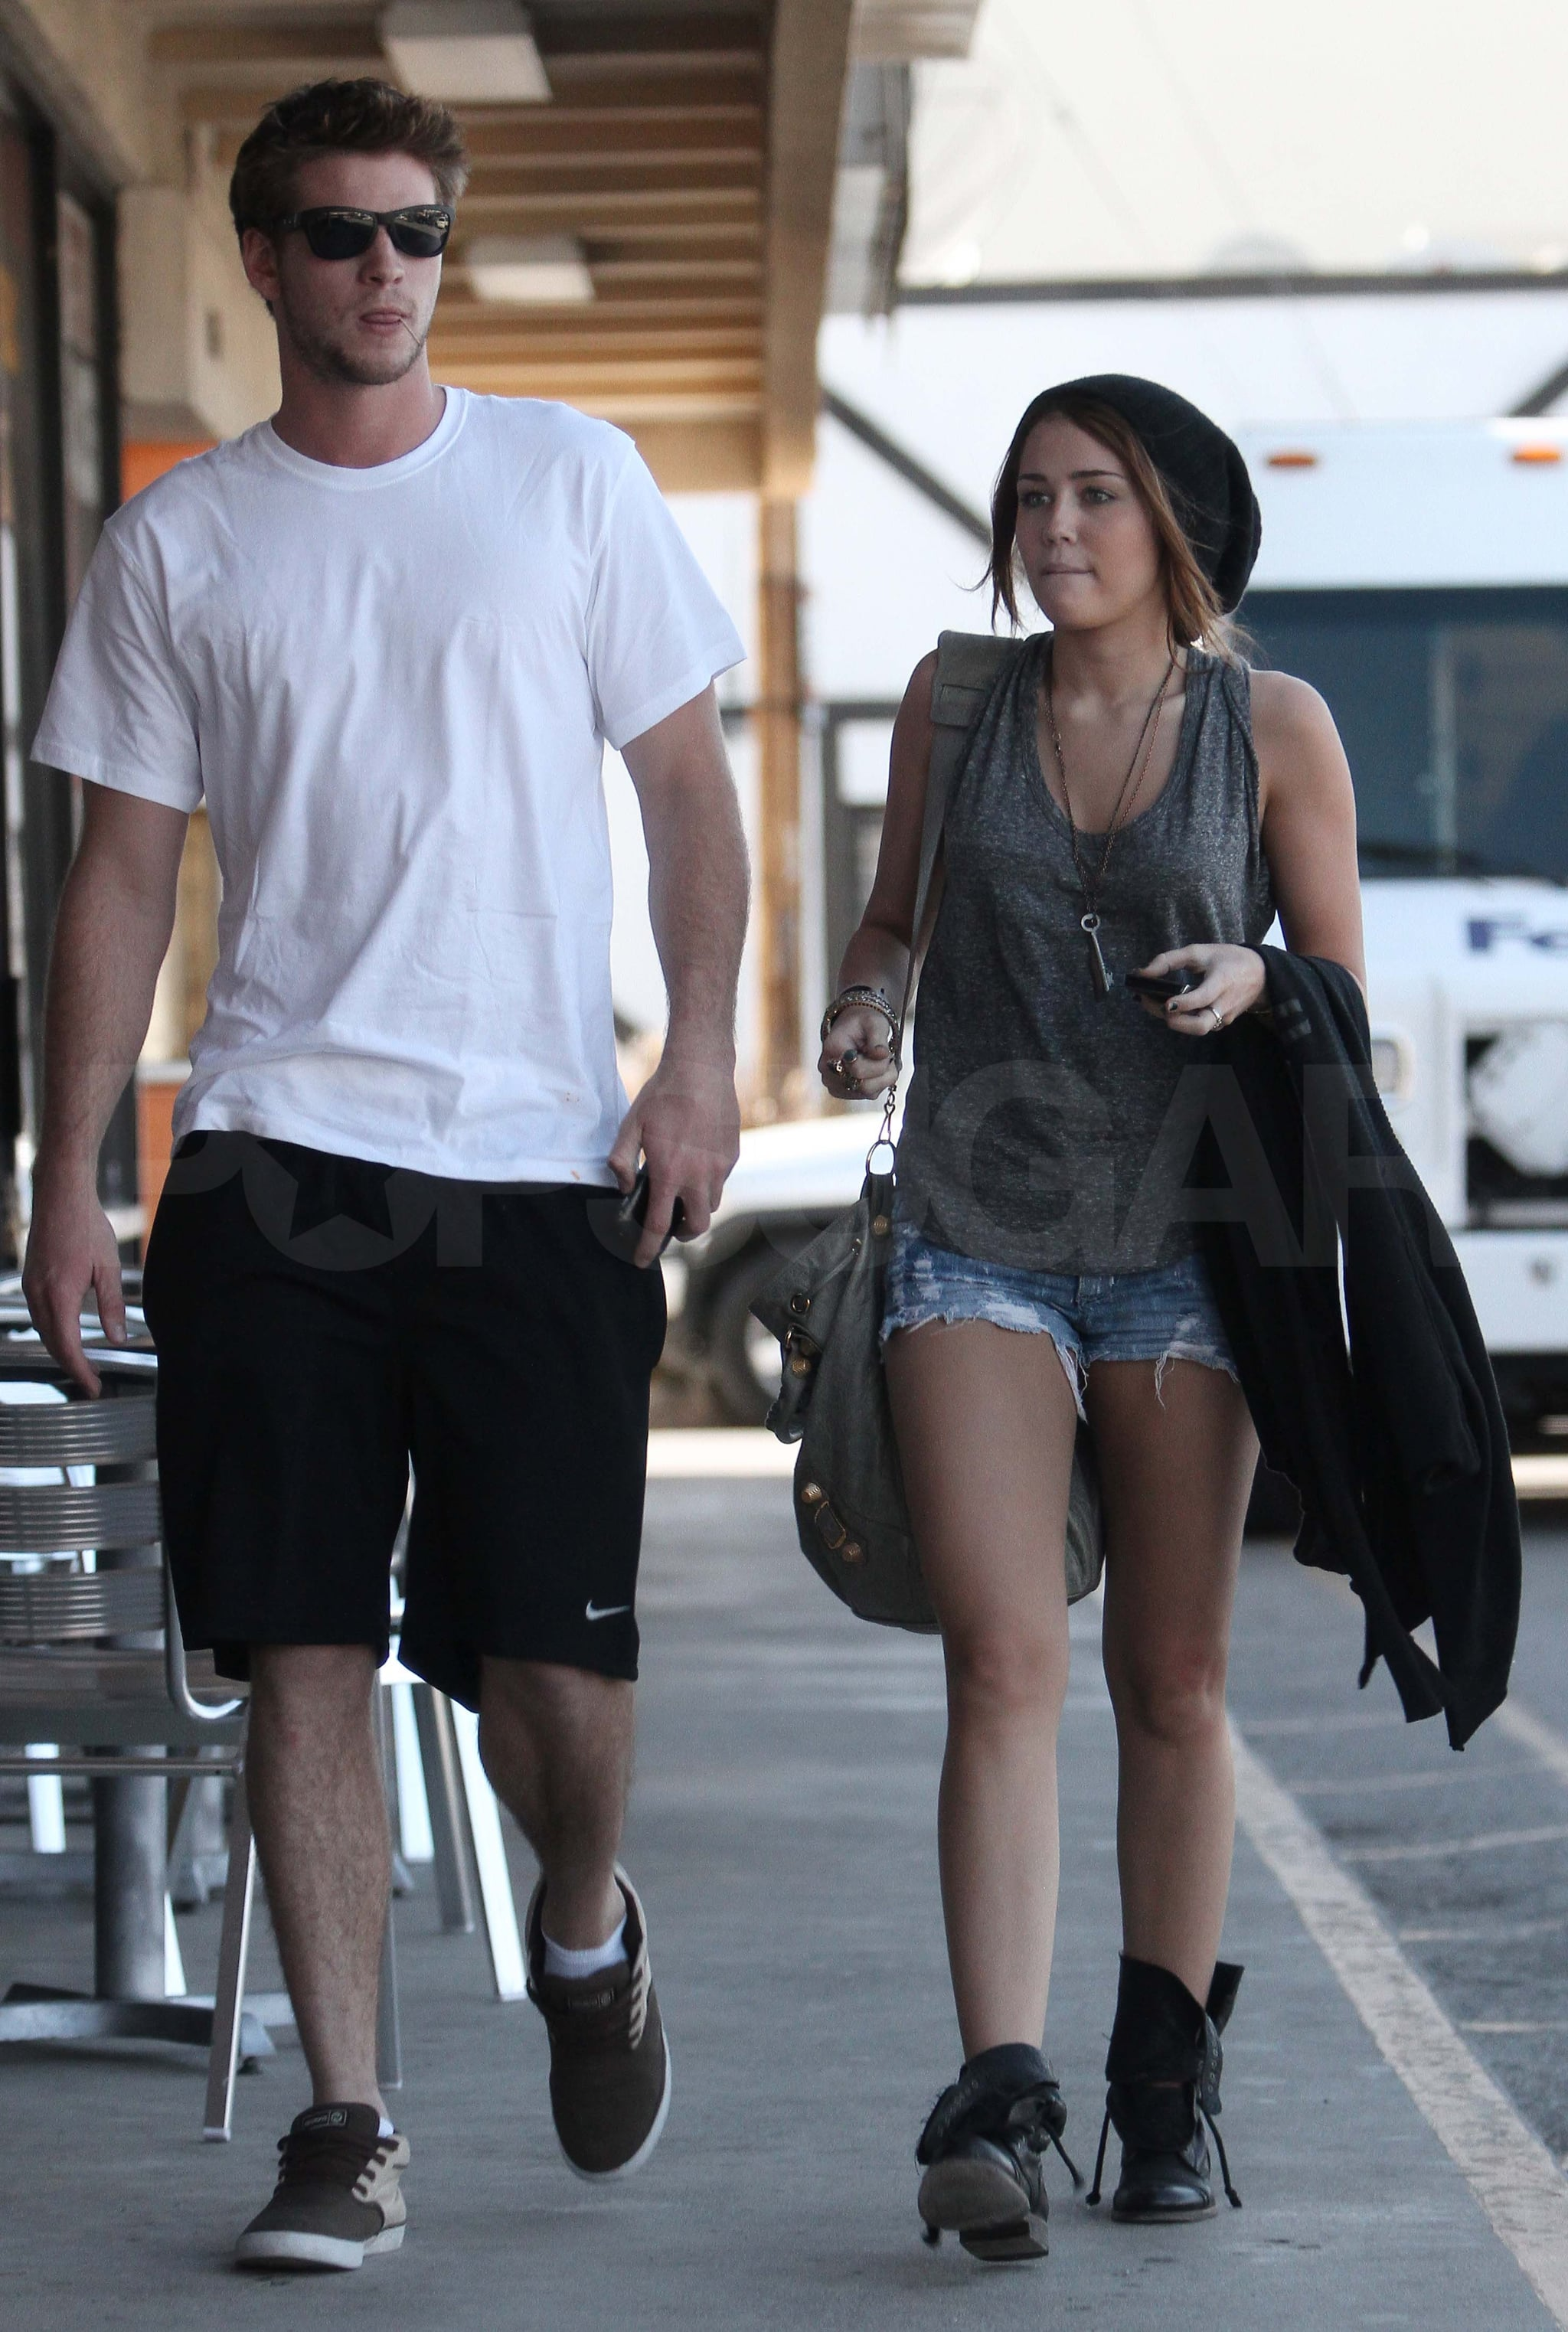 photos of the last songs miley cyrus and liam hemsworth